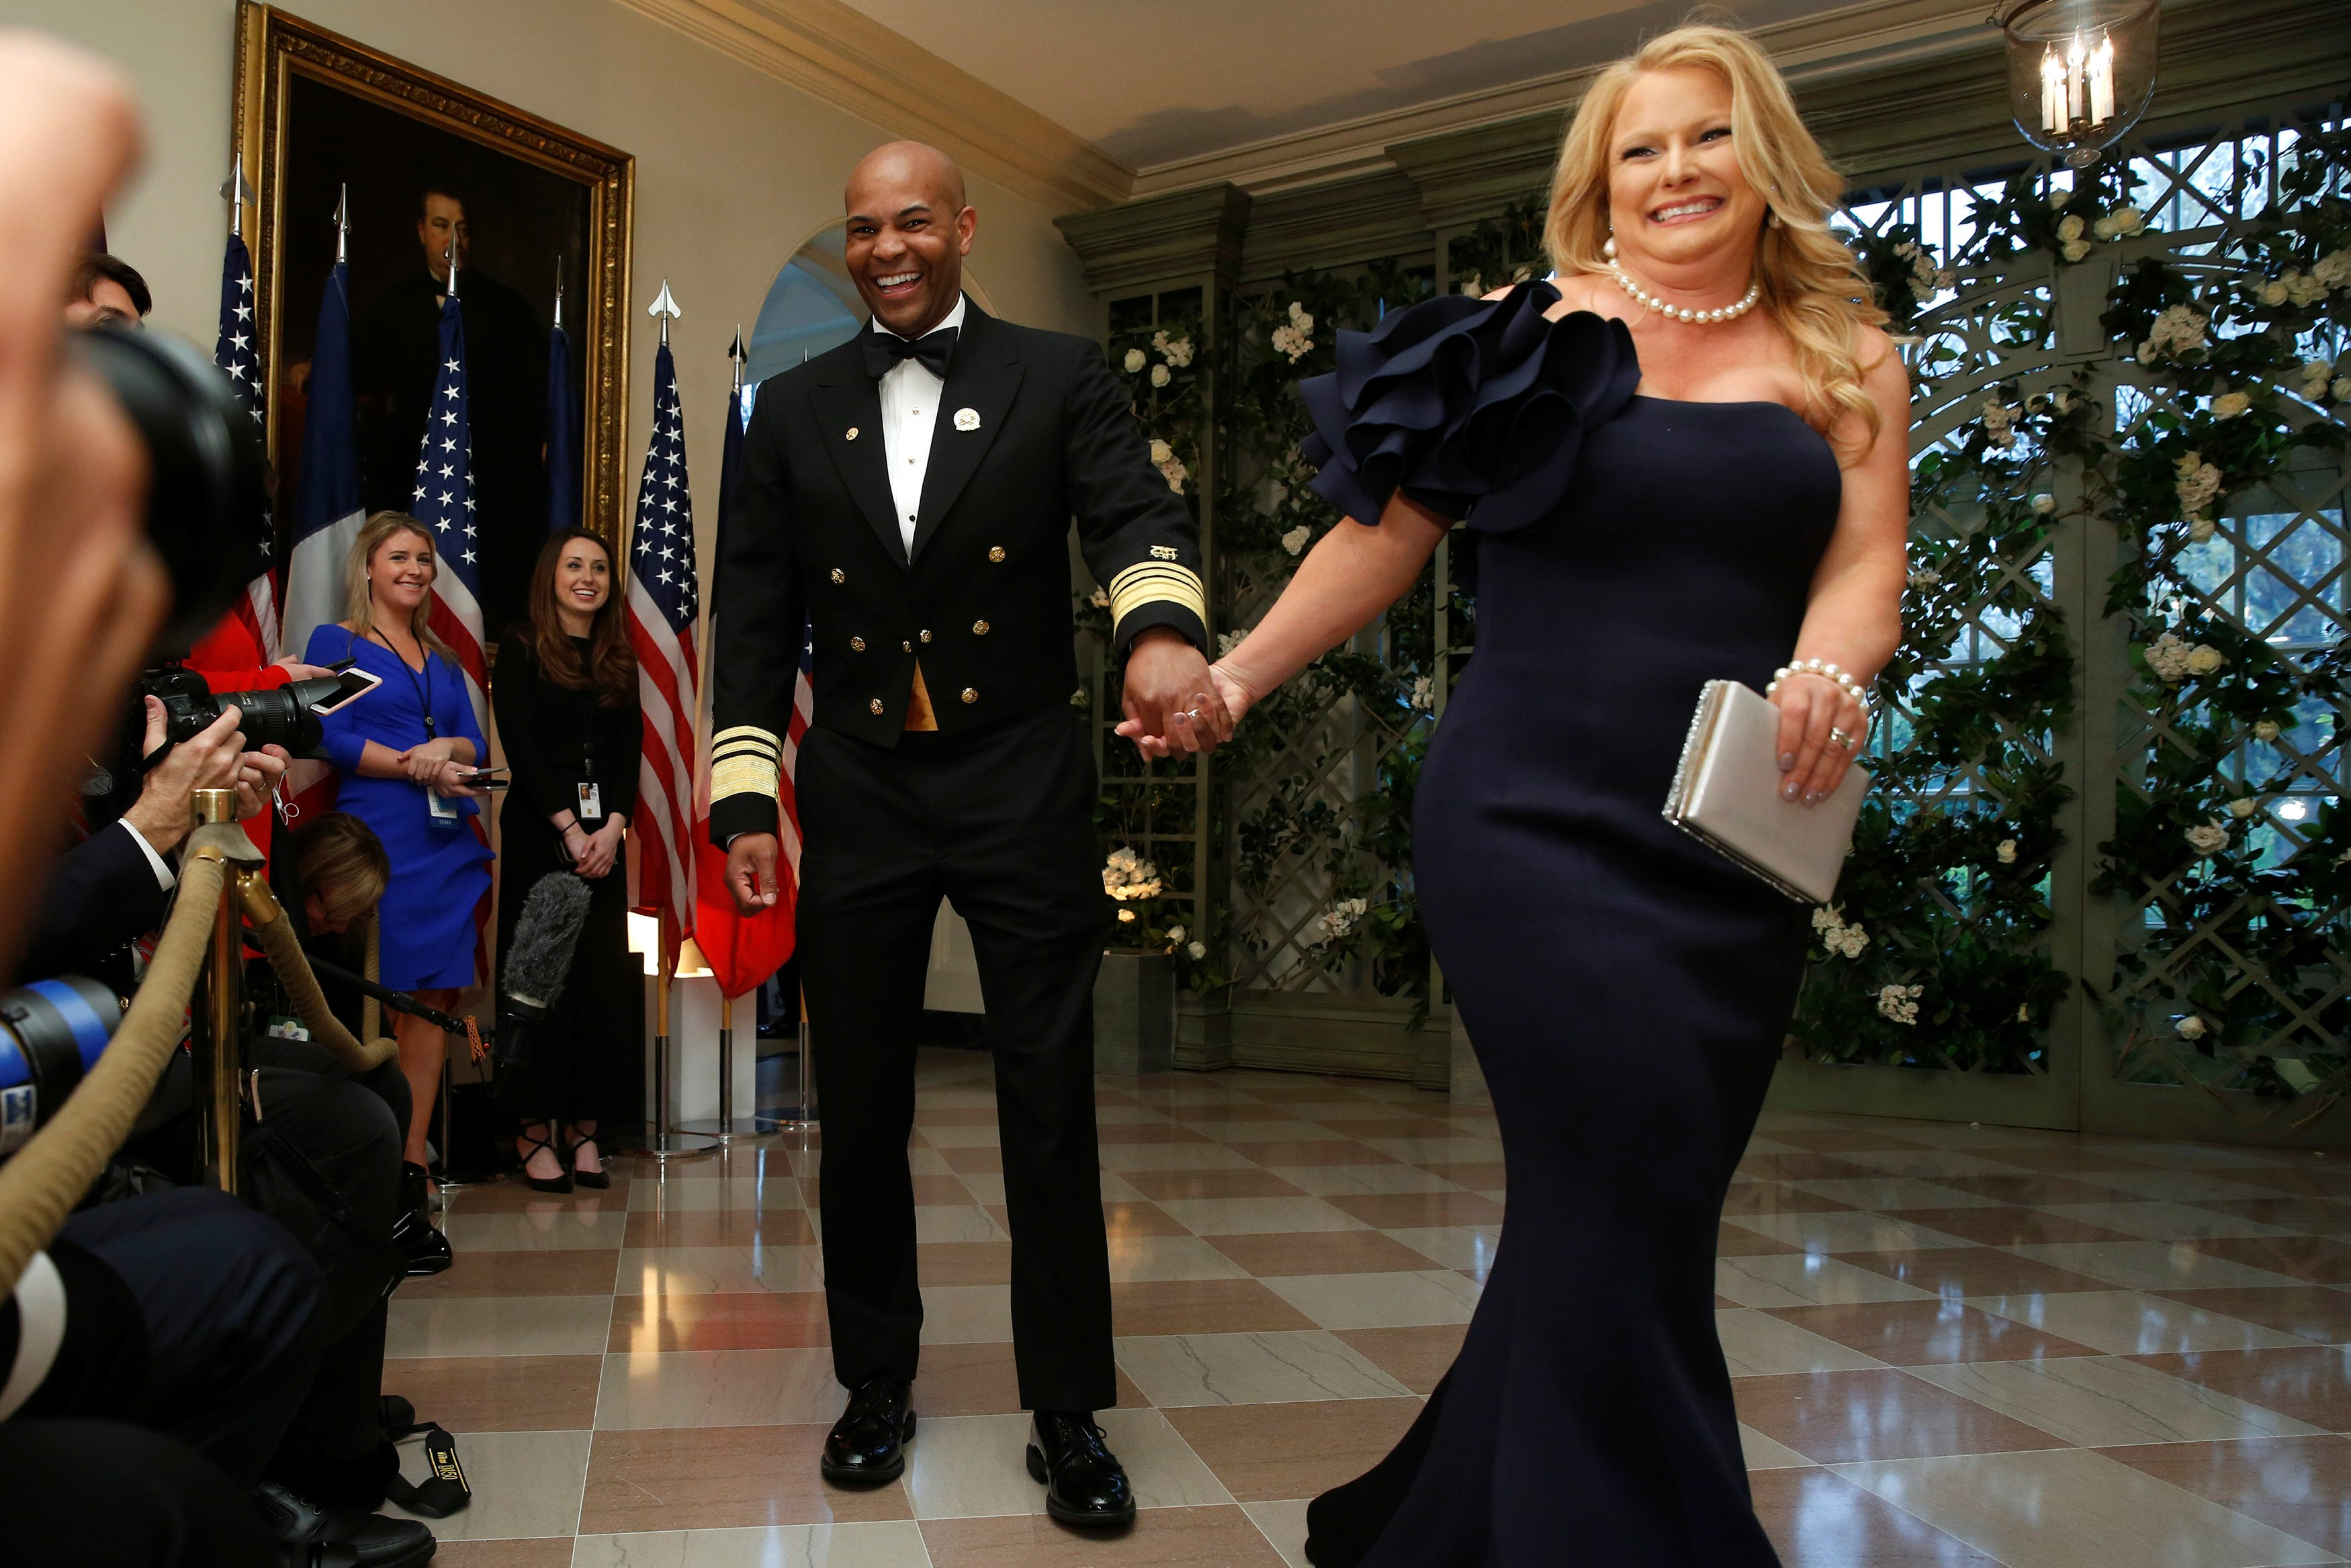 U.S. Surgeon General Adams and his wife arrive for the State Dinner in honor of French President Macron at the White House in Washington